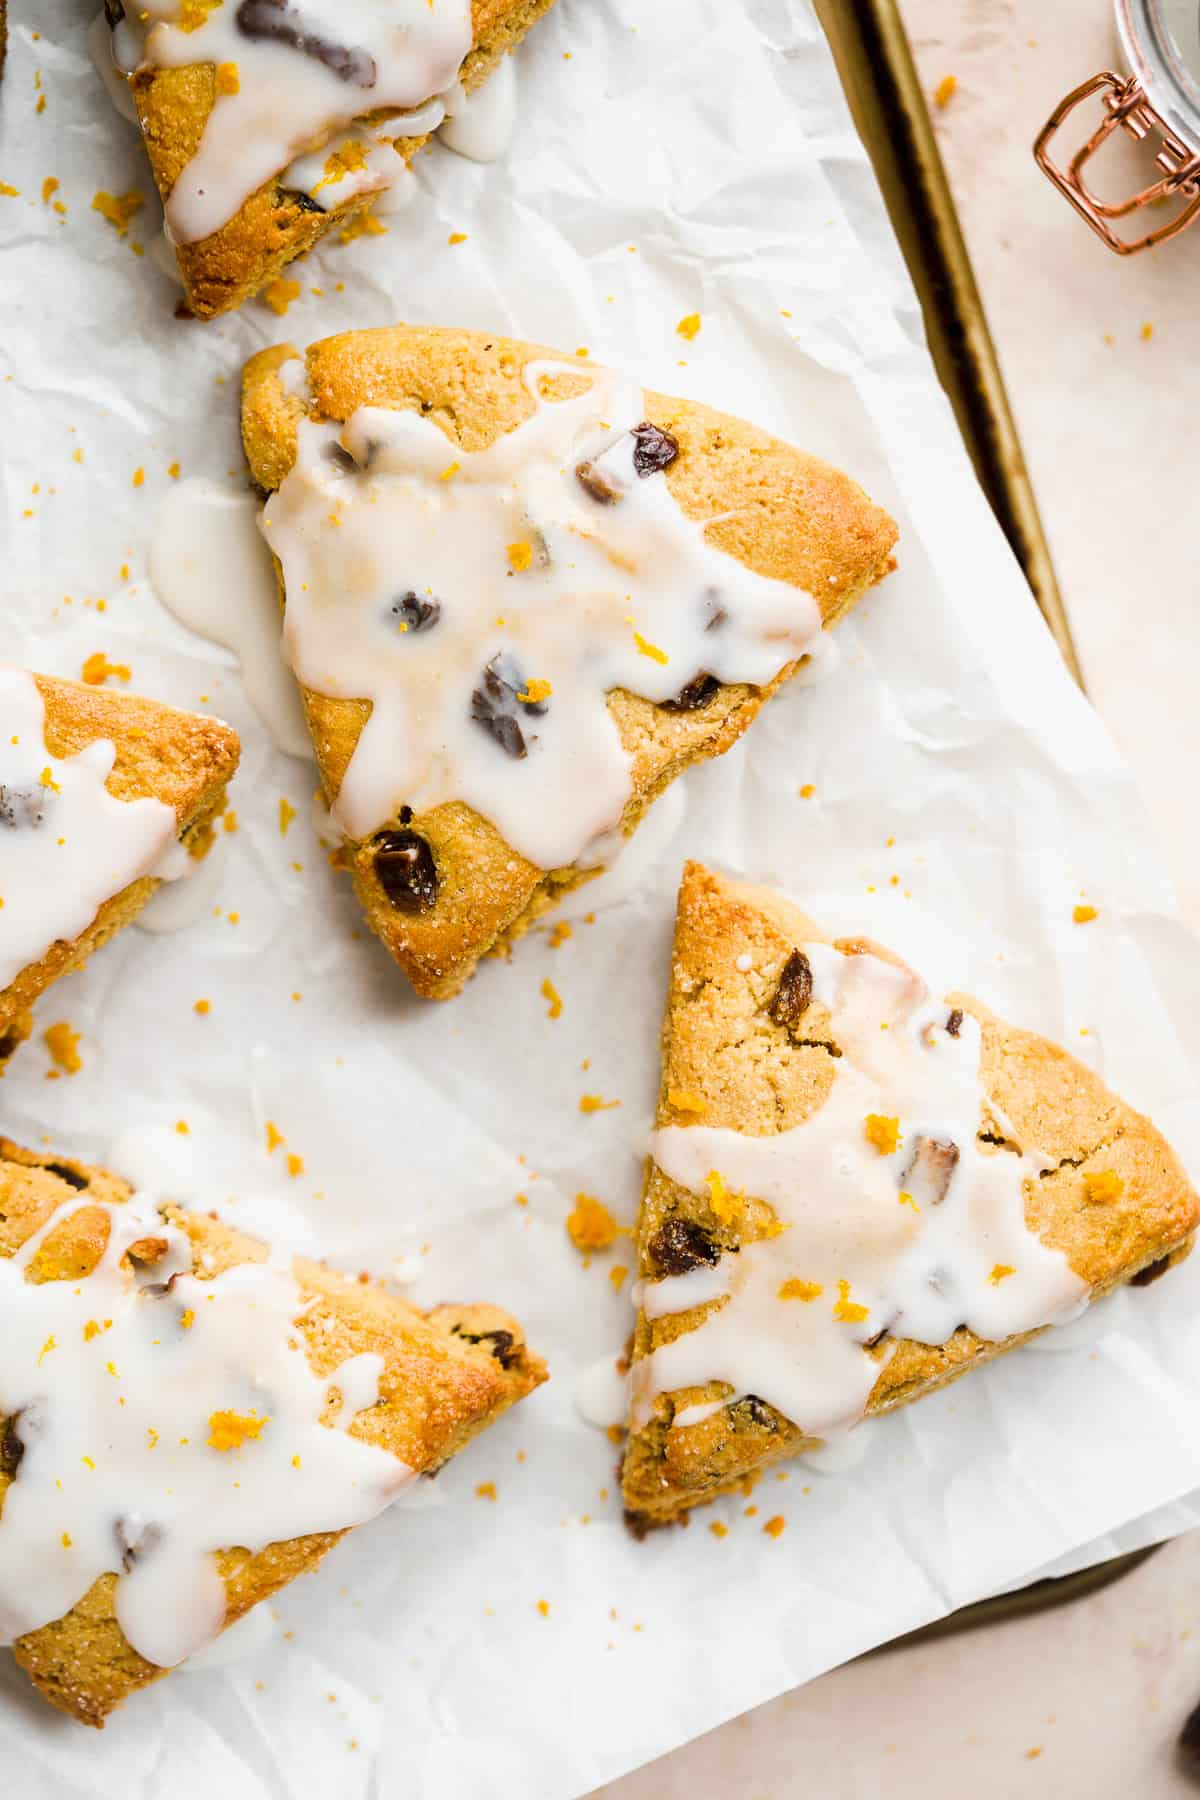 Golden scone with white icing and orange zest on white parchment paper.